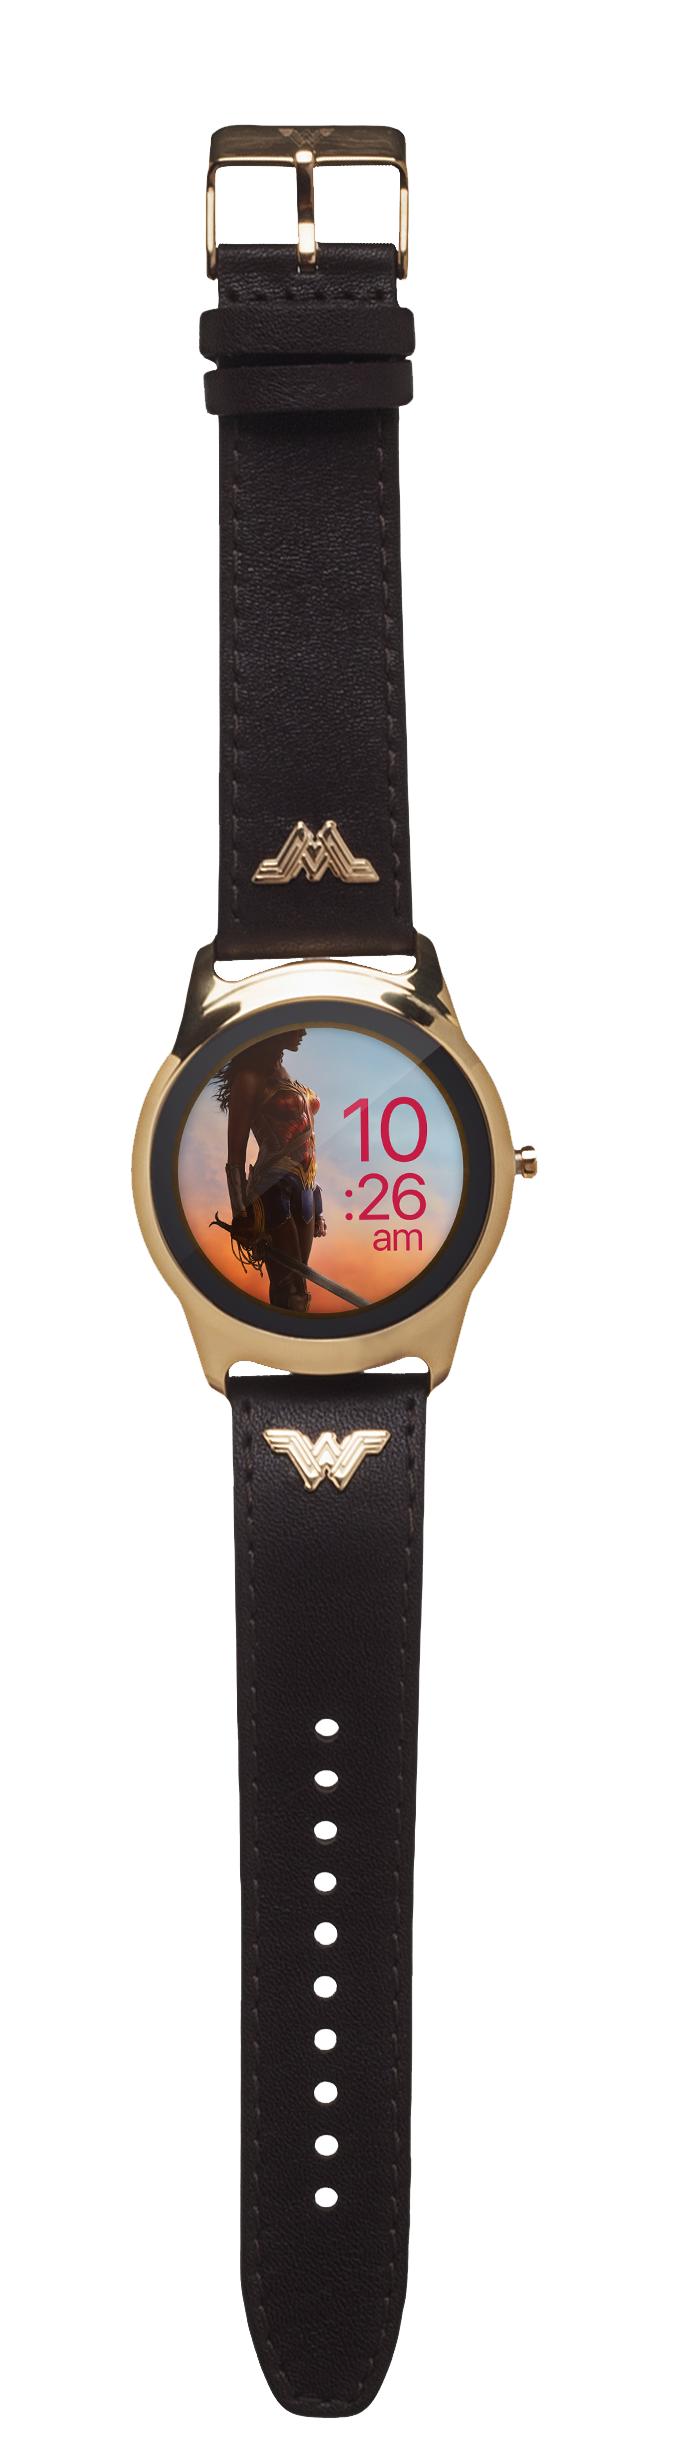 ONe61 - Smartwatch - Wonder Woman